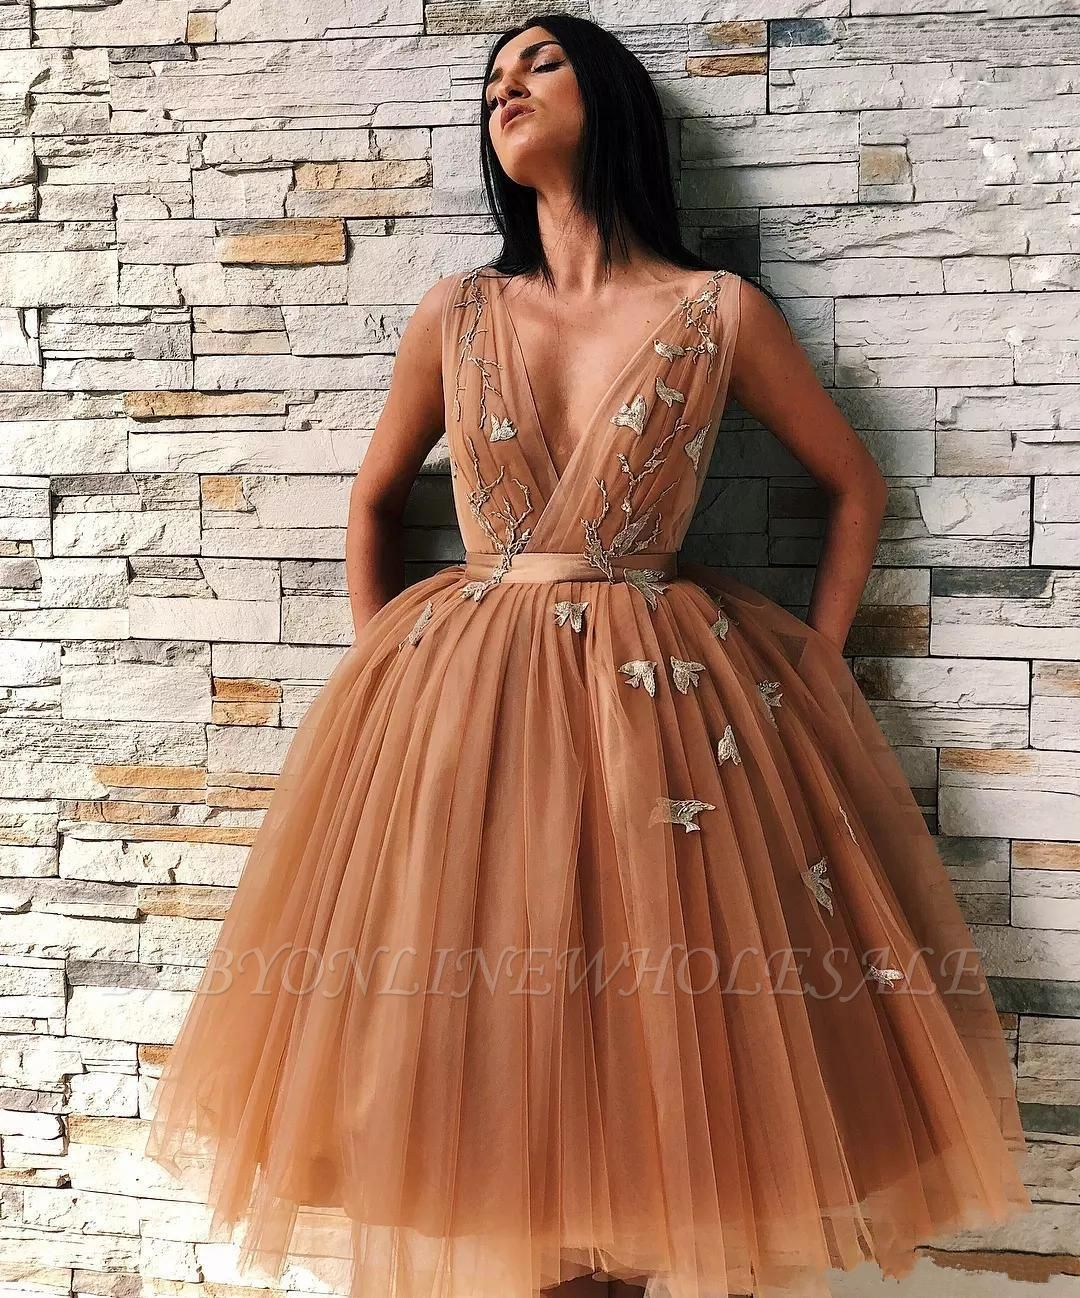 Sexy A-line Tulle Knee Length Prom Dresses With Lace Appliques | Cheap Brown Open Back Party Gowns